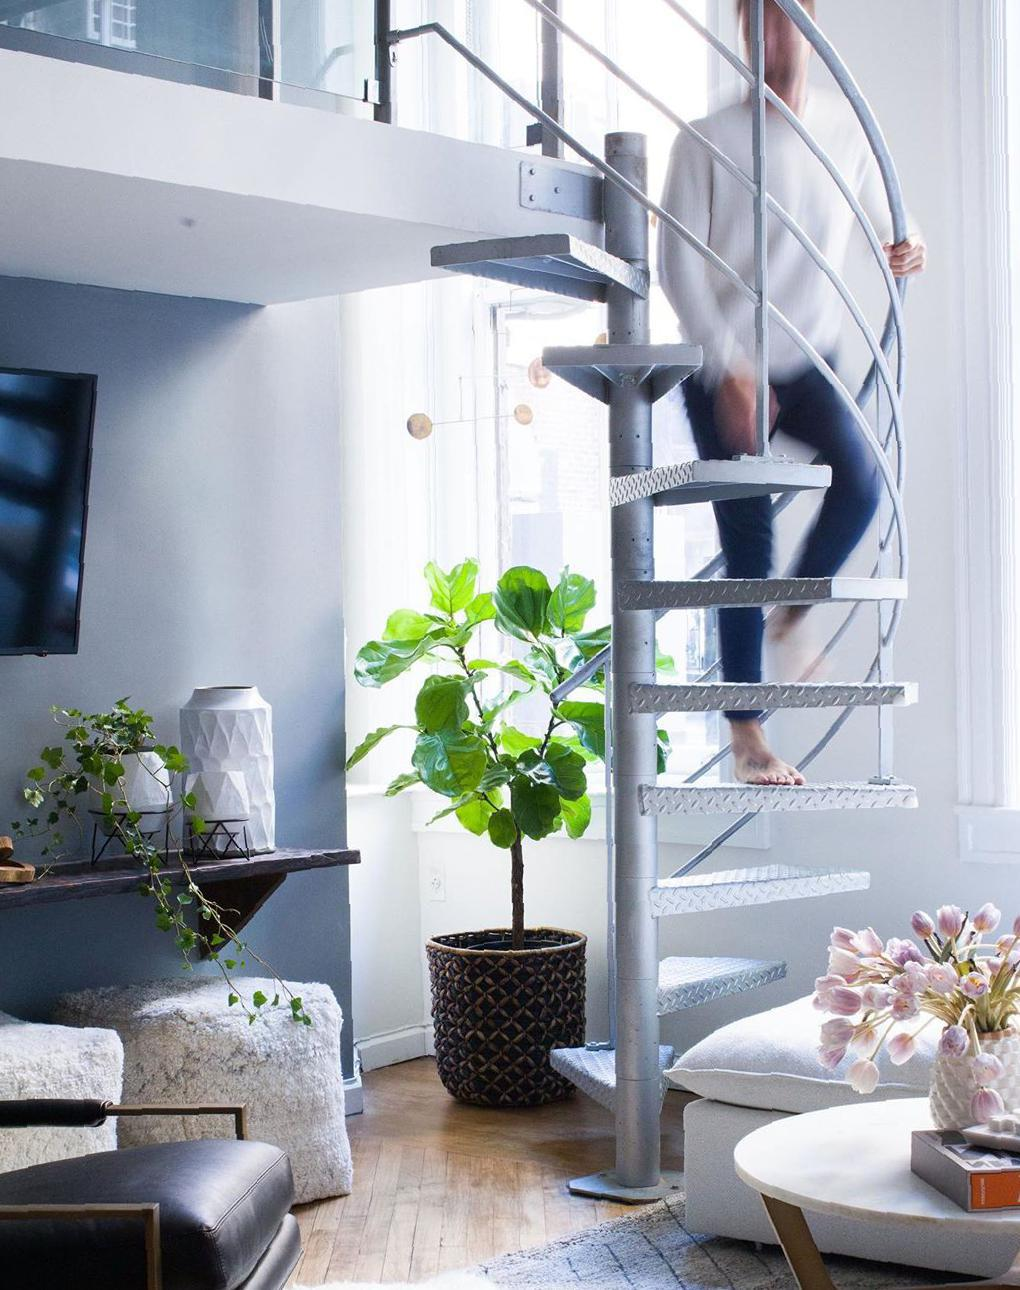 Gorgeous Indoor Plants Idea Images for Decoration - Guide19 Blog